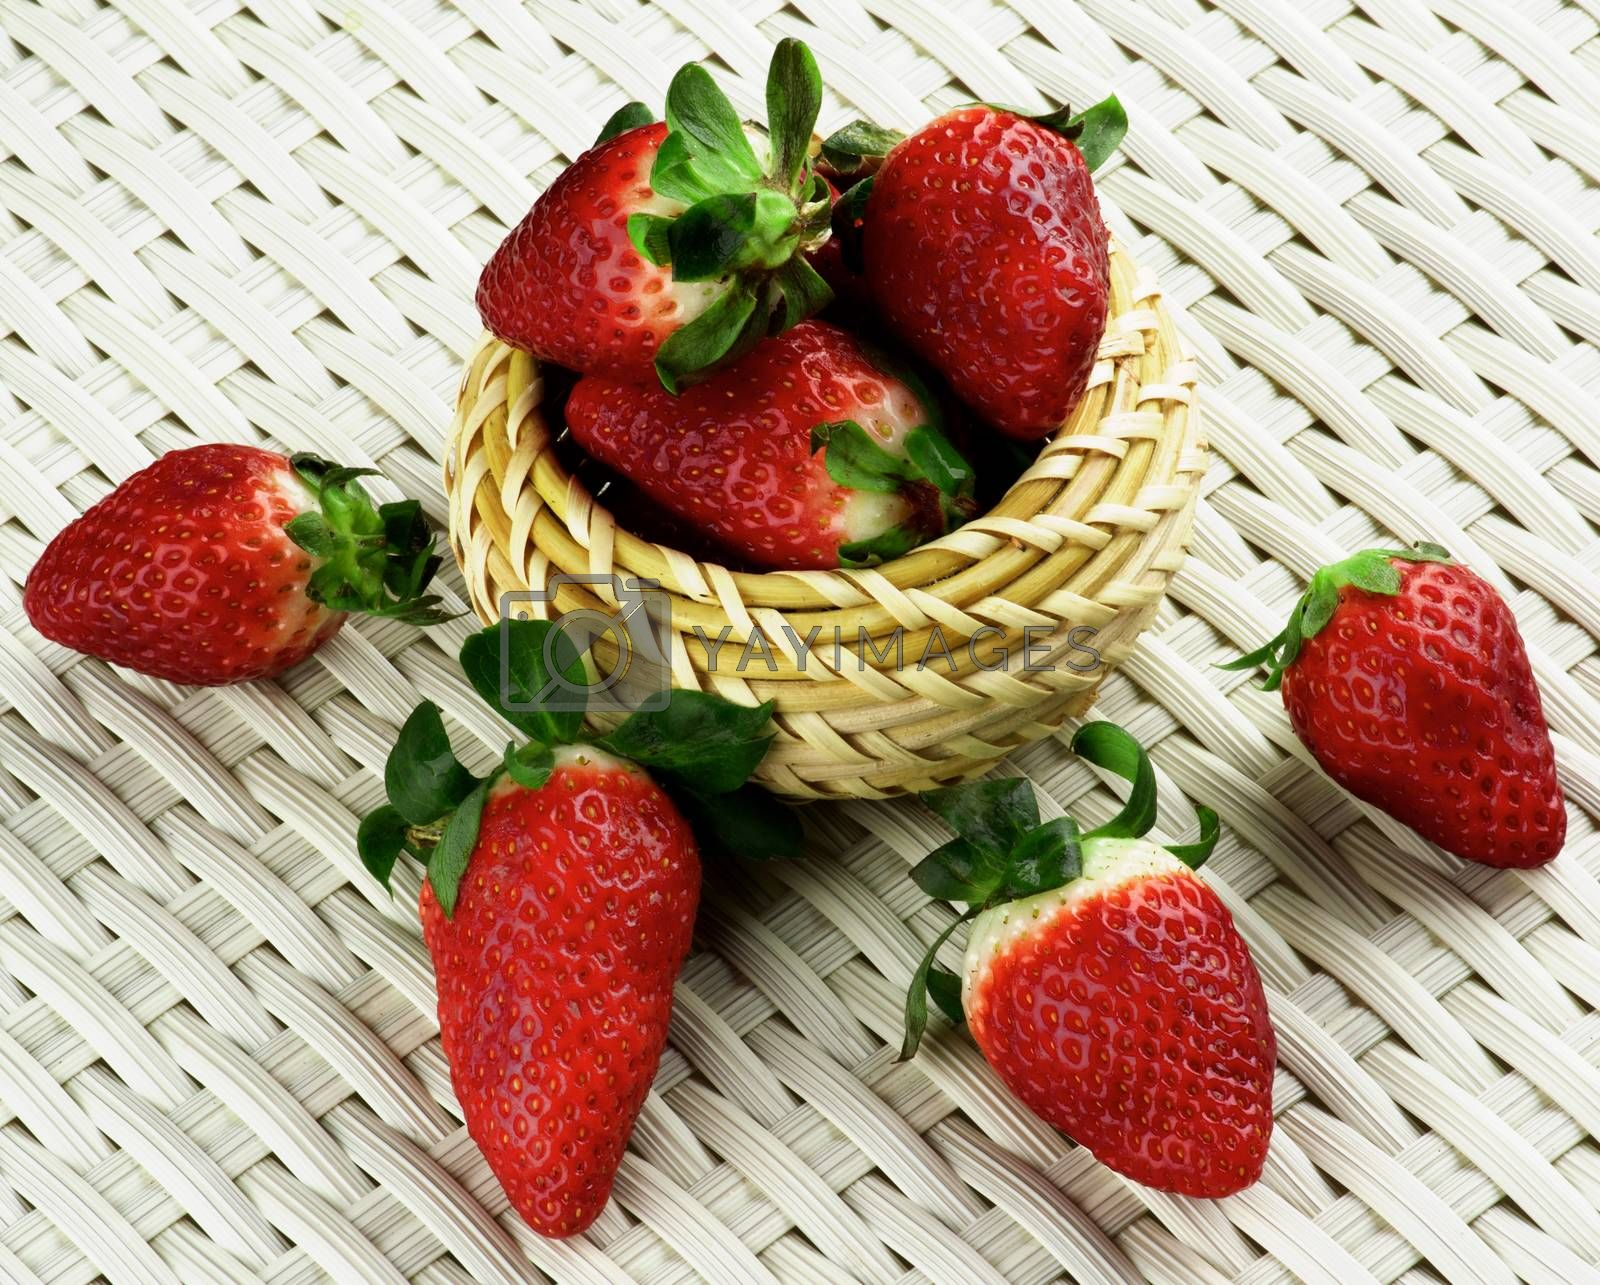 Arrangement of Big Ripe Strawberries in Wicker Bowl closeup on White Wicker background